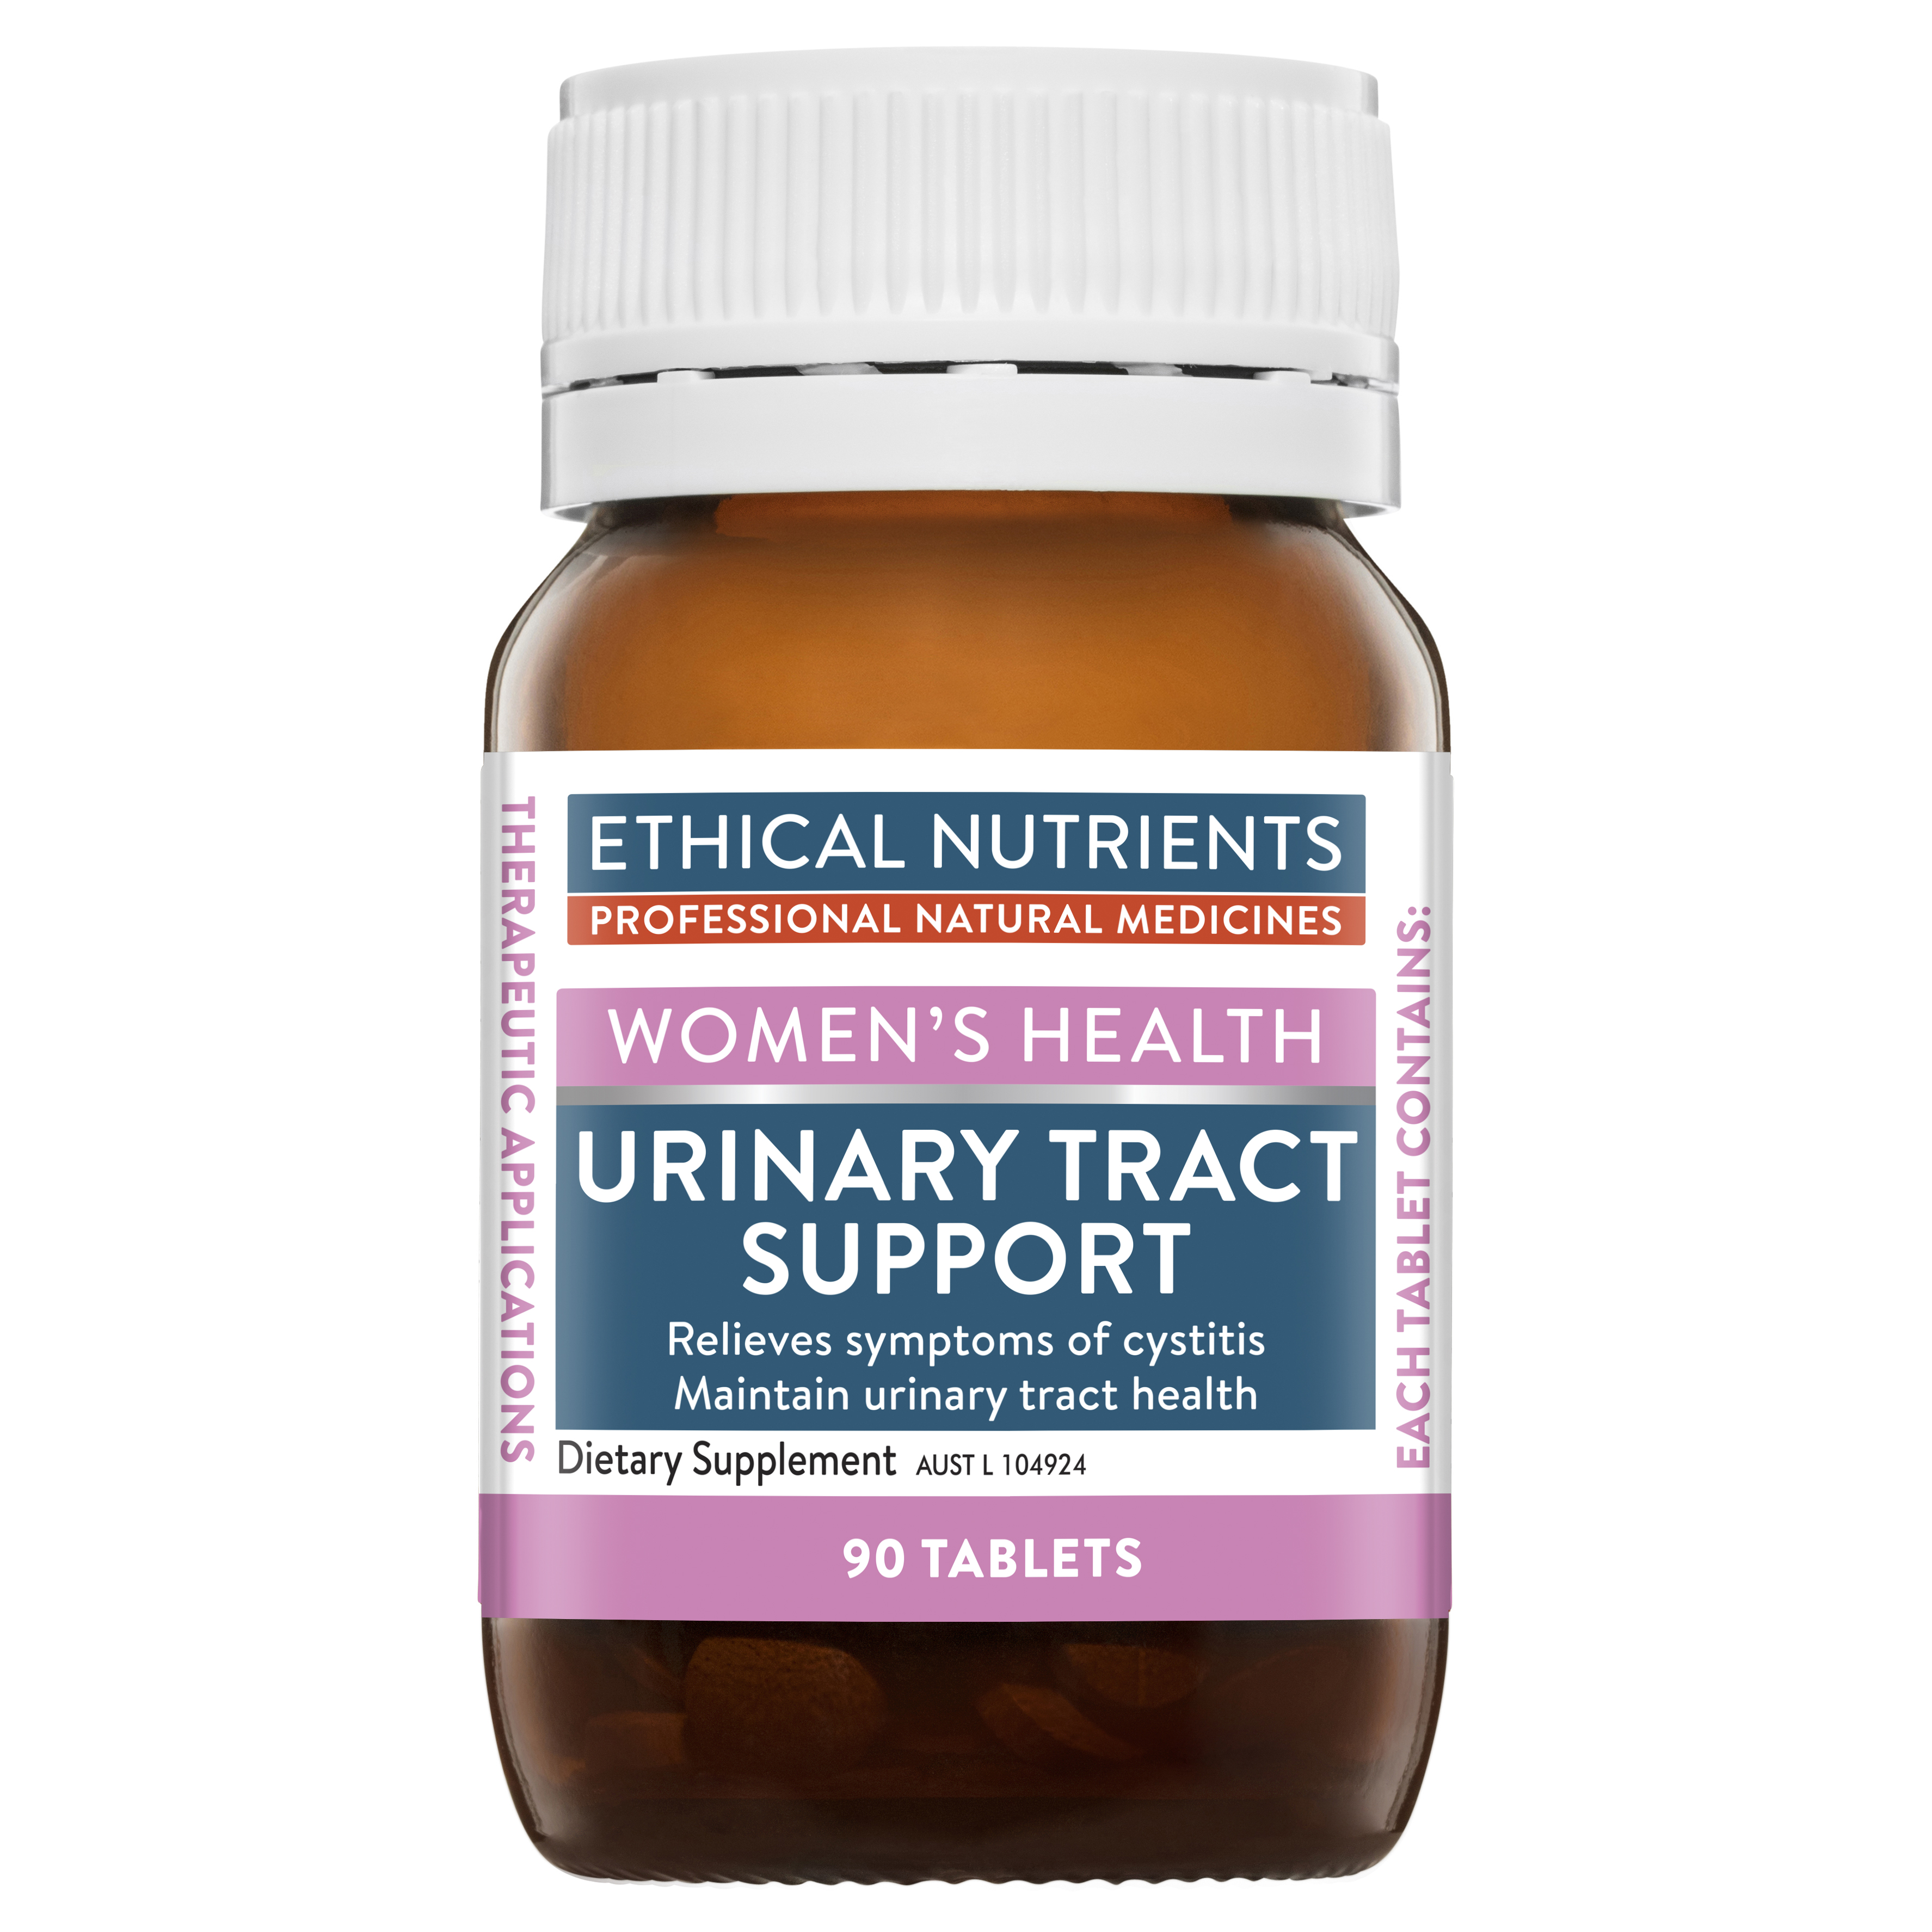 Ethical Nutrients Urinary Tract Support 90